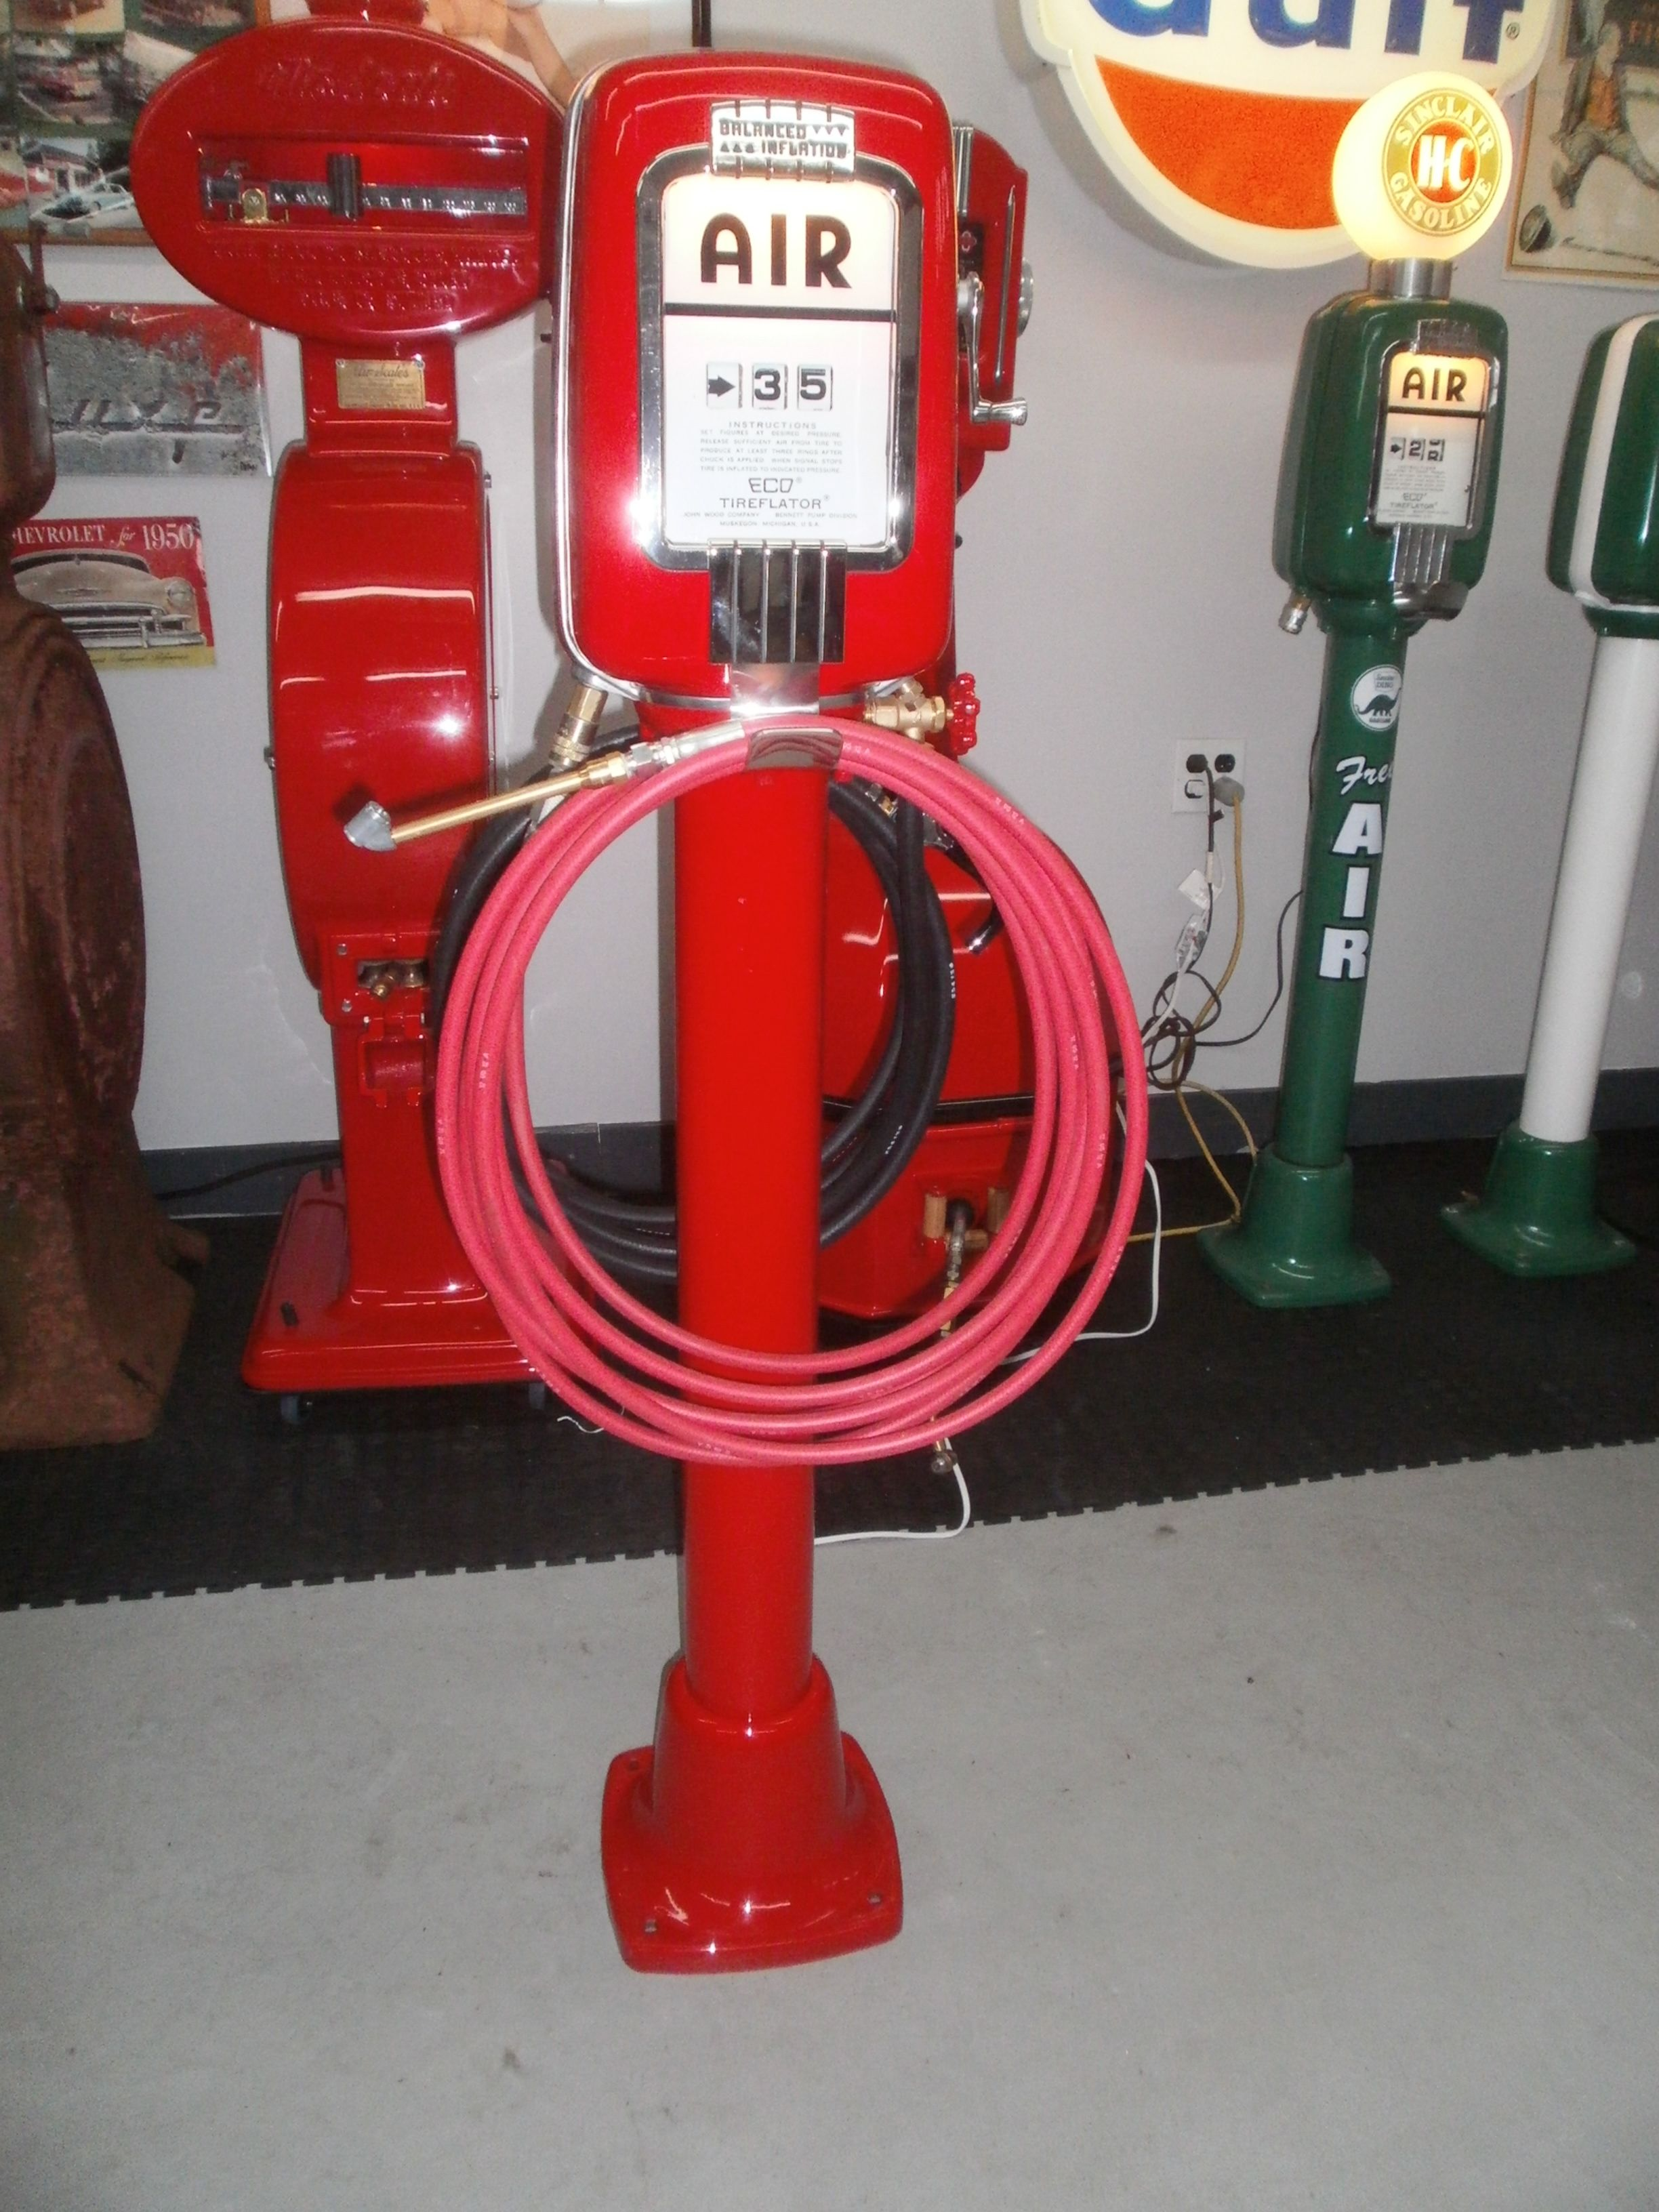 Eco Tireflator model 98w (air & water) Old gas stations